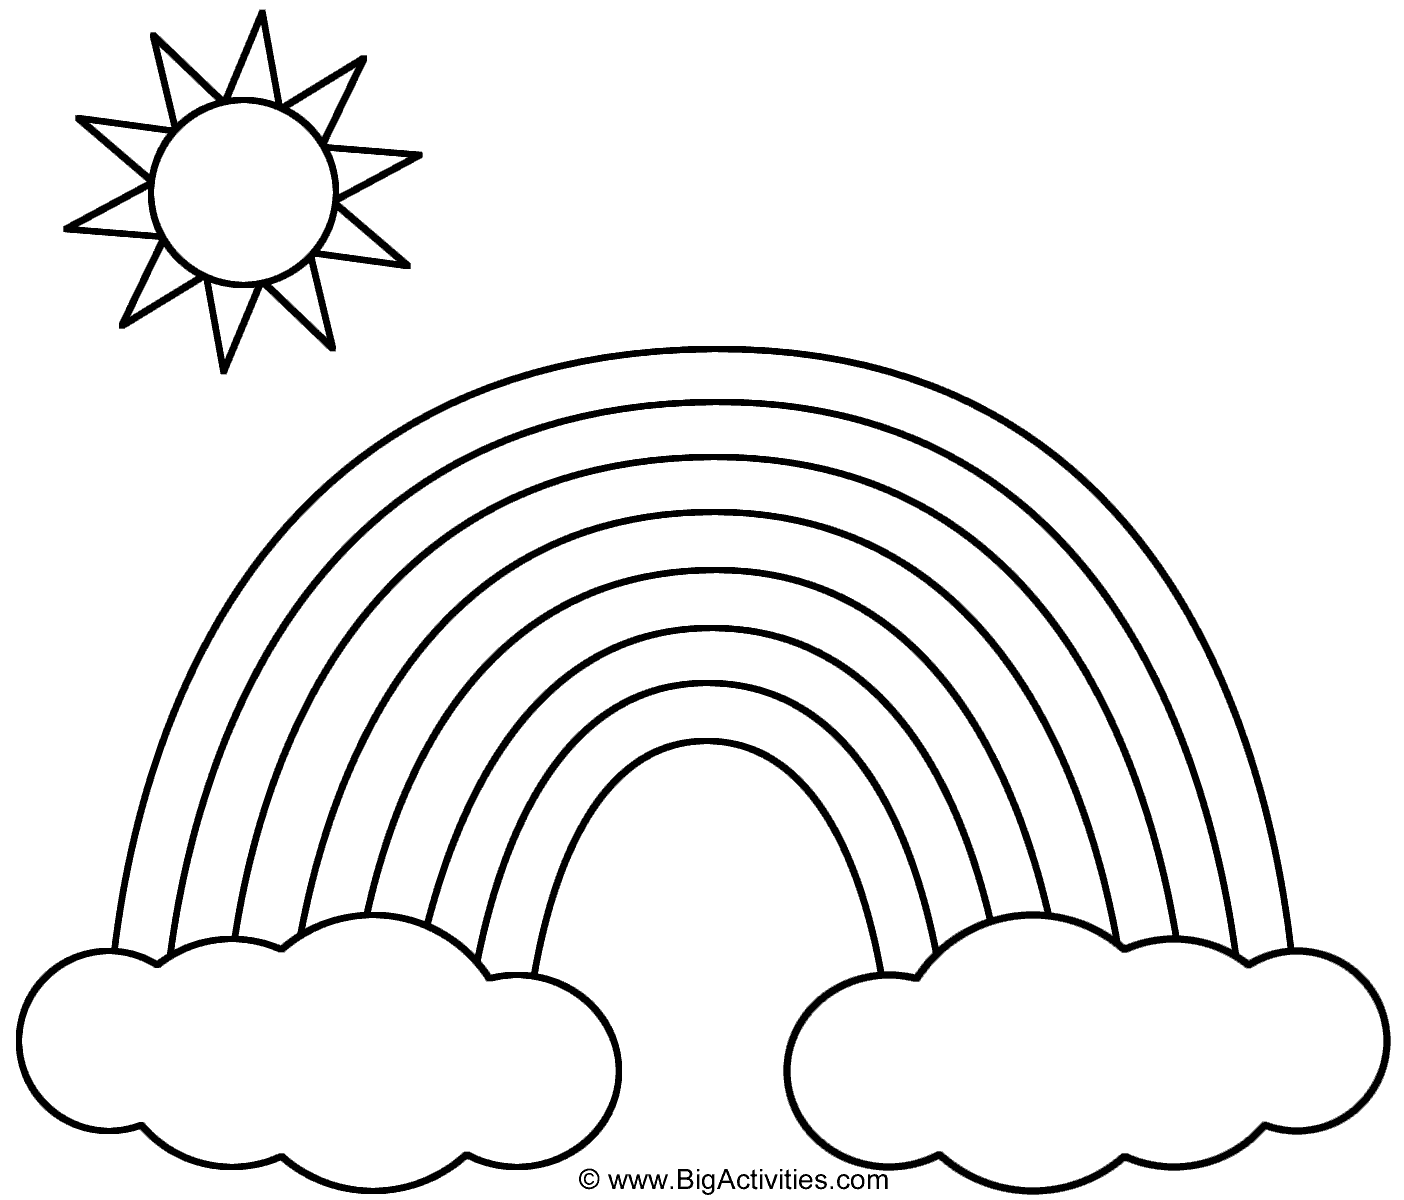 coloring pages rainbow Rainbow with Clouds and Sun   Coloring Page (Nature) coloring pages rainbow